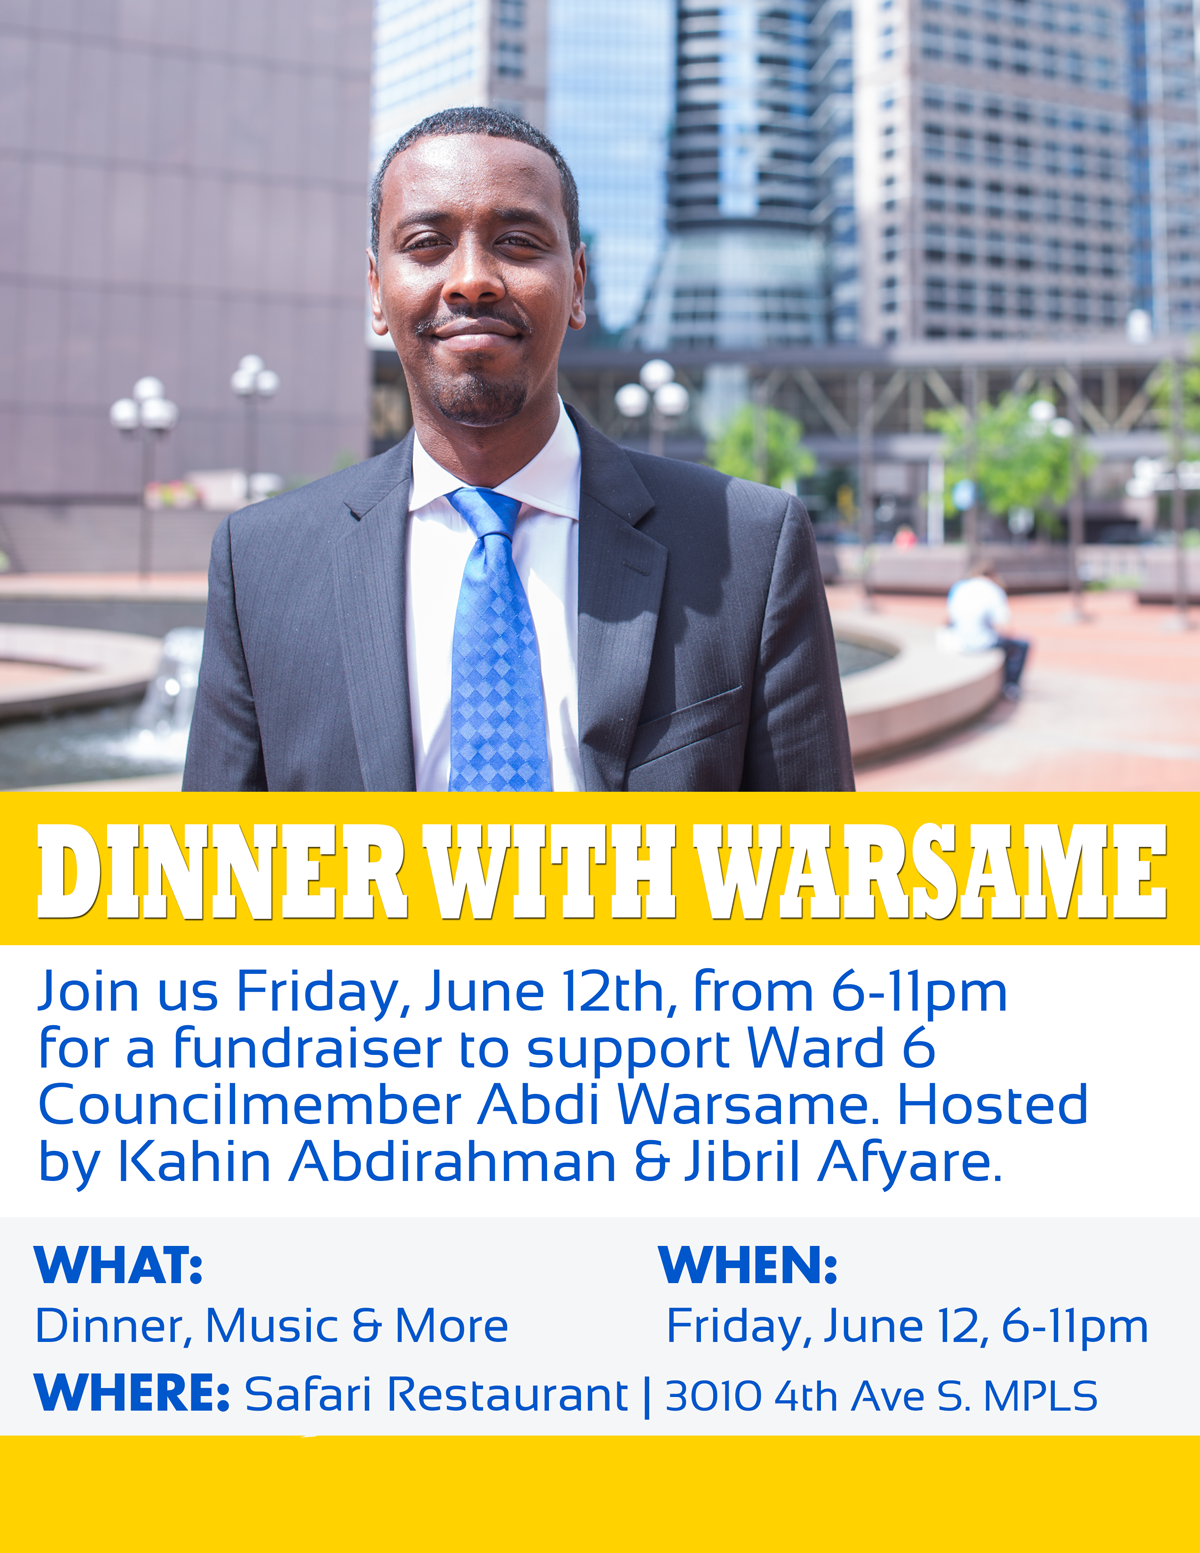 Dinner with CM Warsame Fundraiser